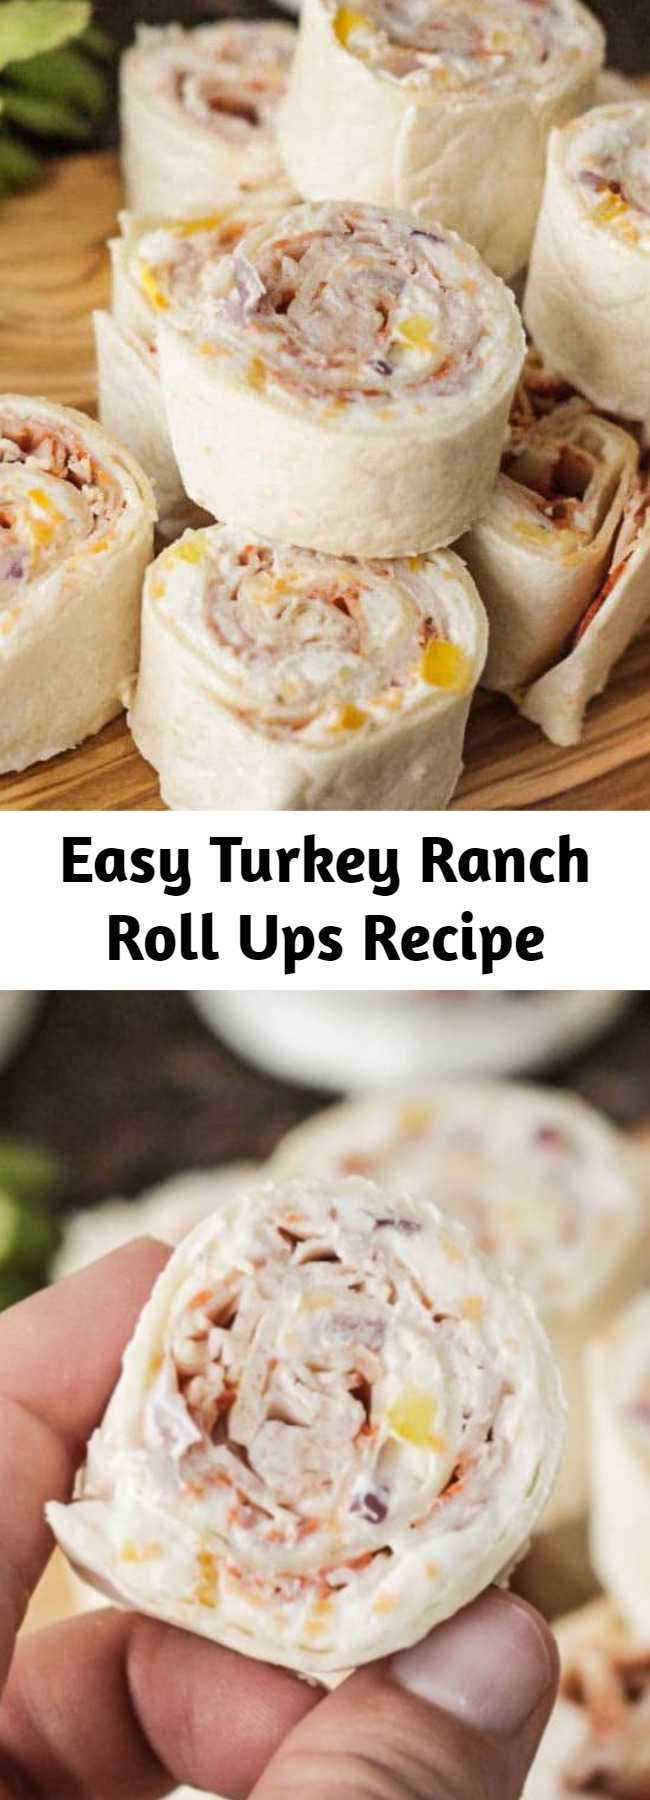 Easy Turkey Ranch Roll Ups Recipe - These creamy Turkey Ranch Tortilla Roll Ups are super easy, you can make them quickly, are packed with bold and tasty flavors, and just all around super delicious!  They are the perfect  appetizer for a party, but also great for a lunch box for school or work and make a great alternative to sandwich for busy weekdays when you want something a little more exciting to look forward to for lunch.